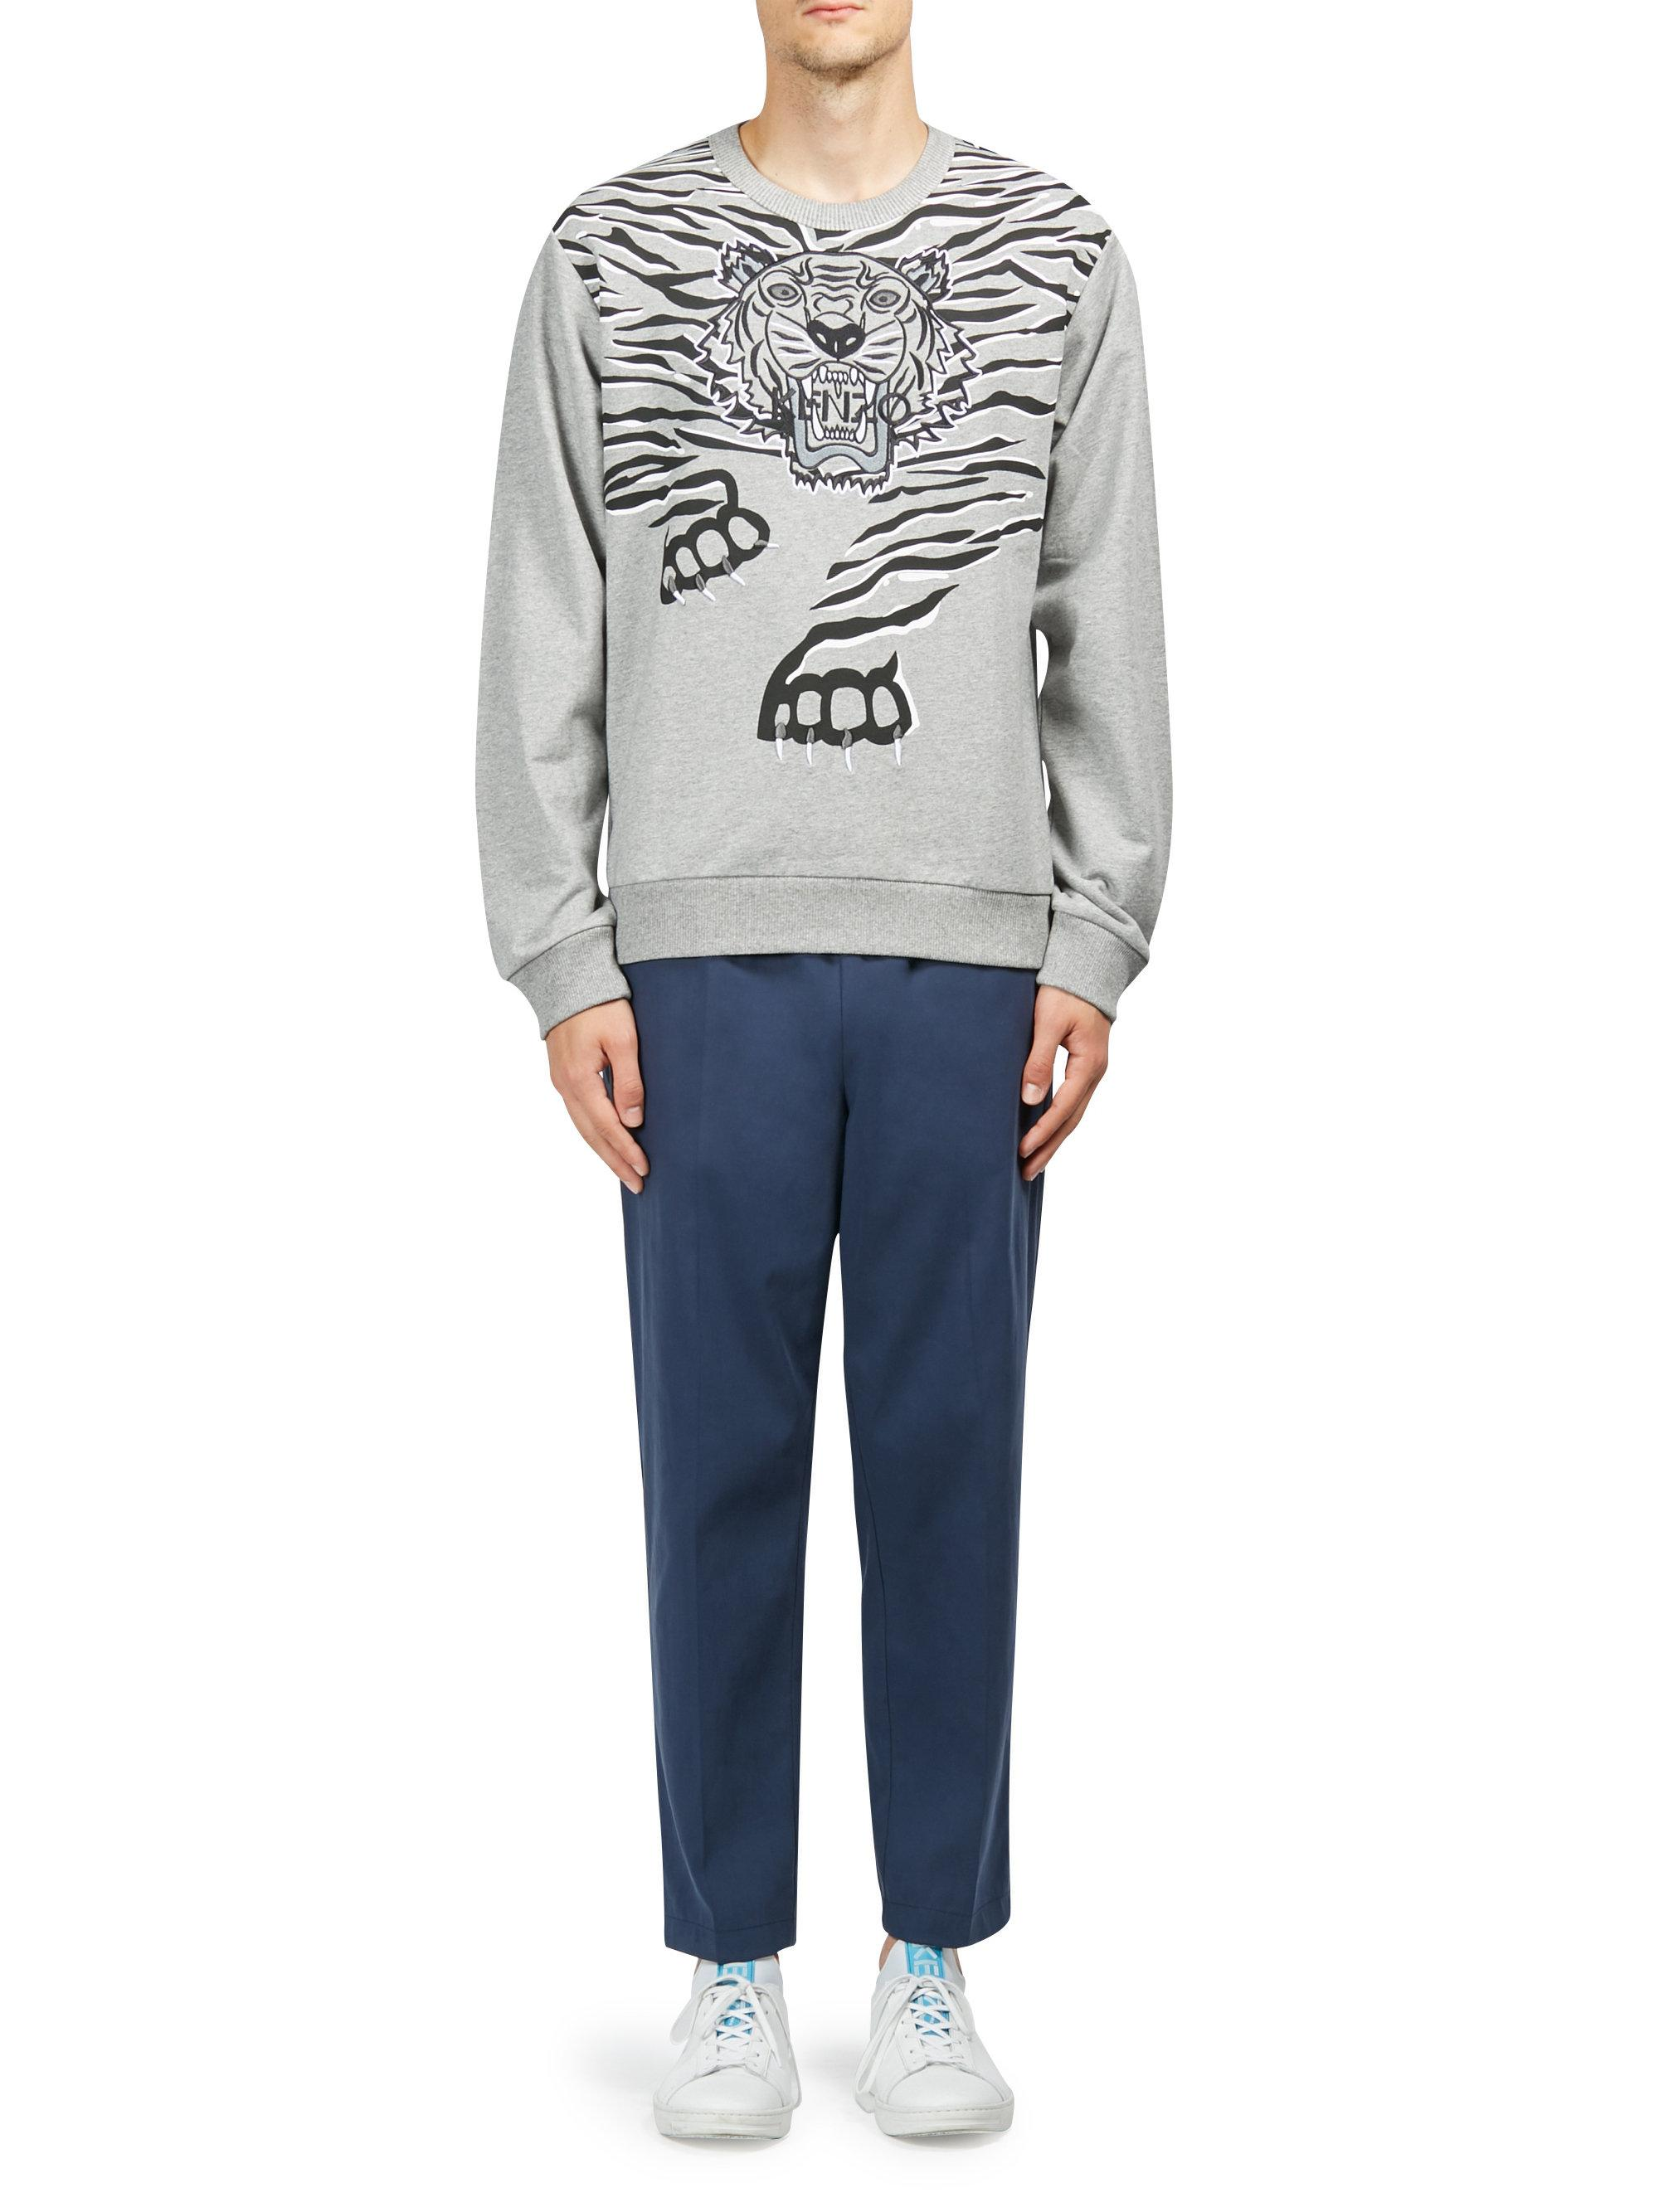 24be8b5c9 KENZO Tiger Claw Cotton Sweatshirt in Gray for Men - Lyst